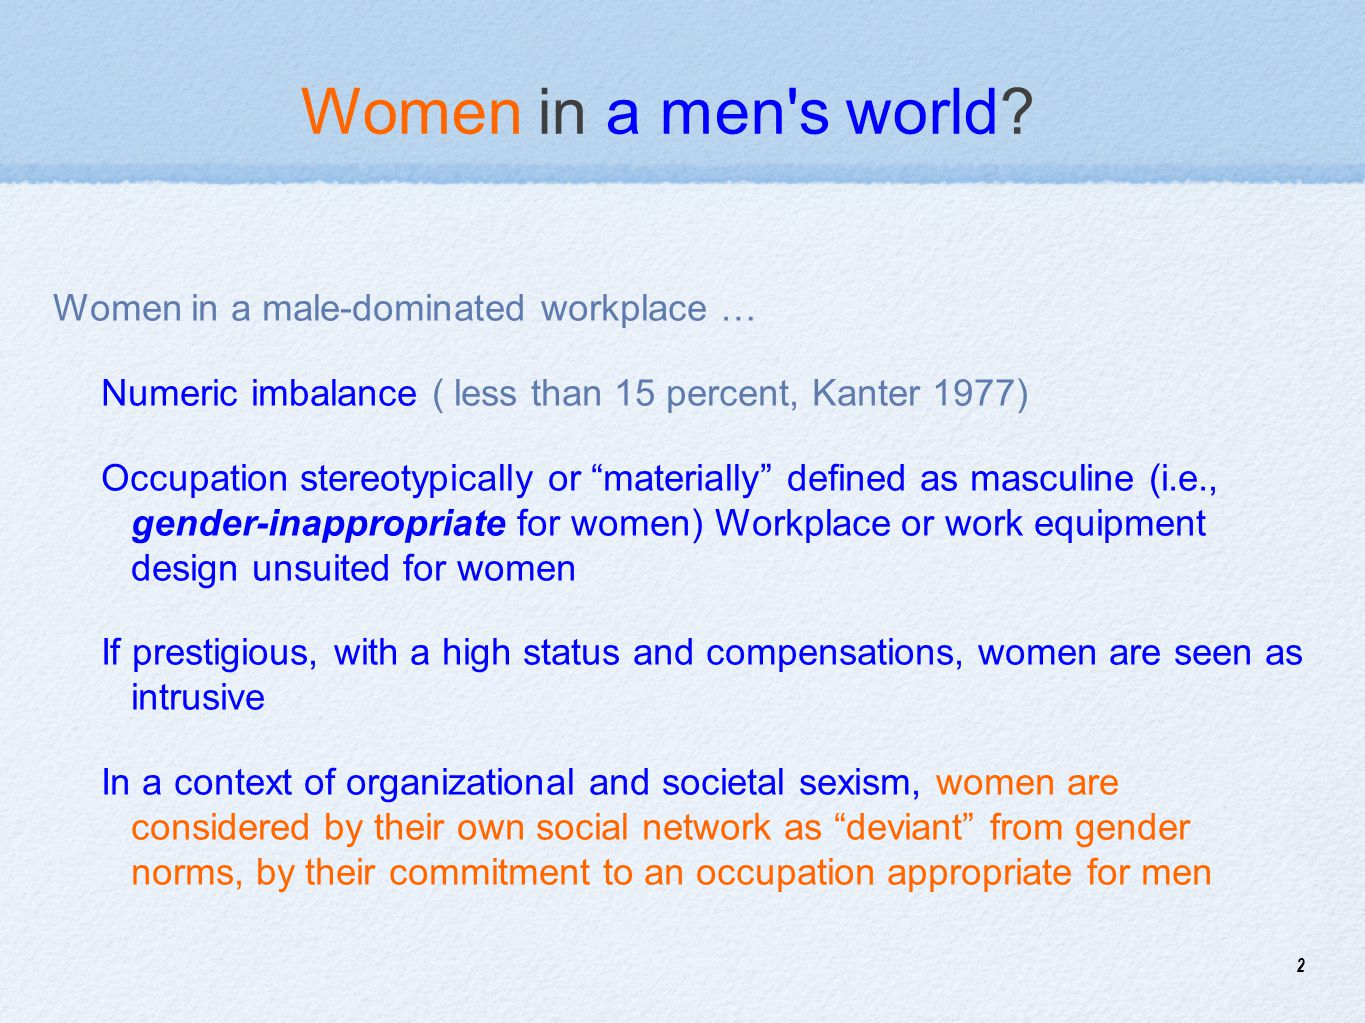 2 Women in a men's world? Women in a male-dominated workplace … Numeric imbalance ( less than 15 percent, Kanter 1977) Occupation stereotypically or ""